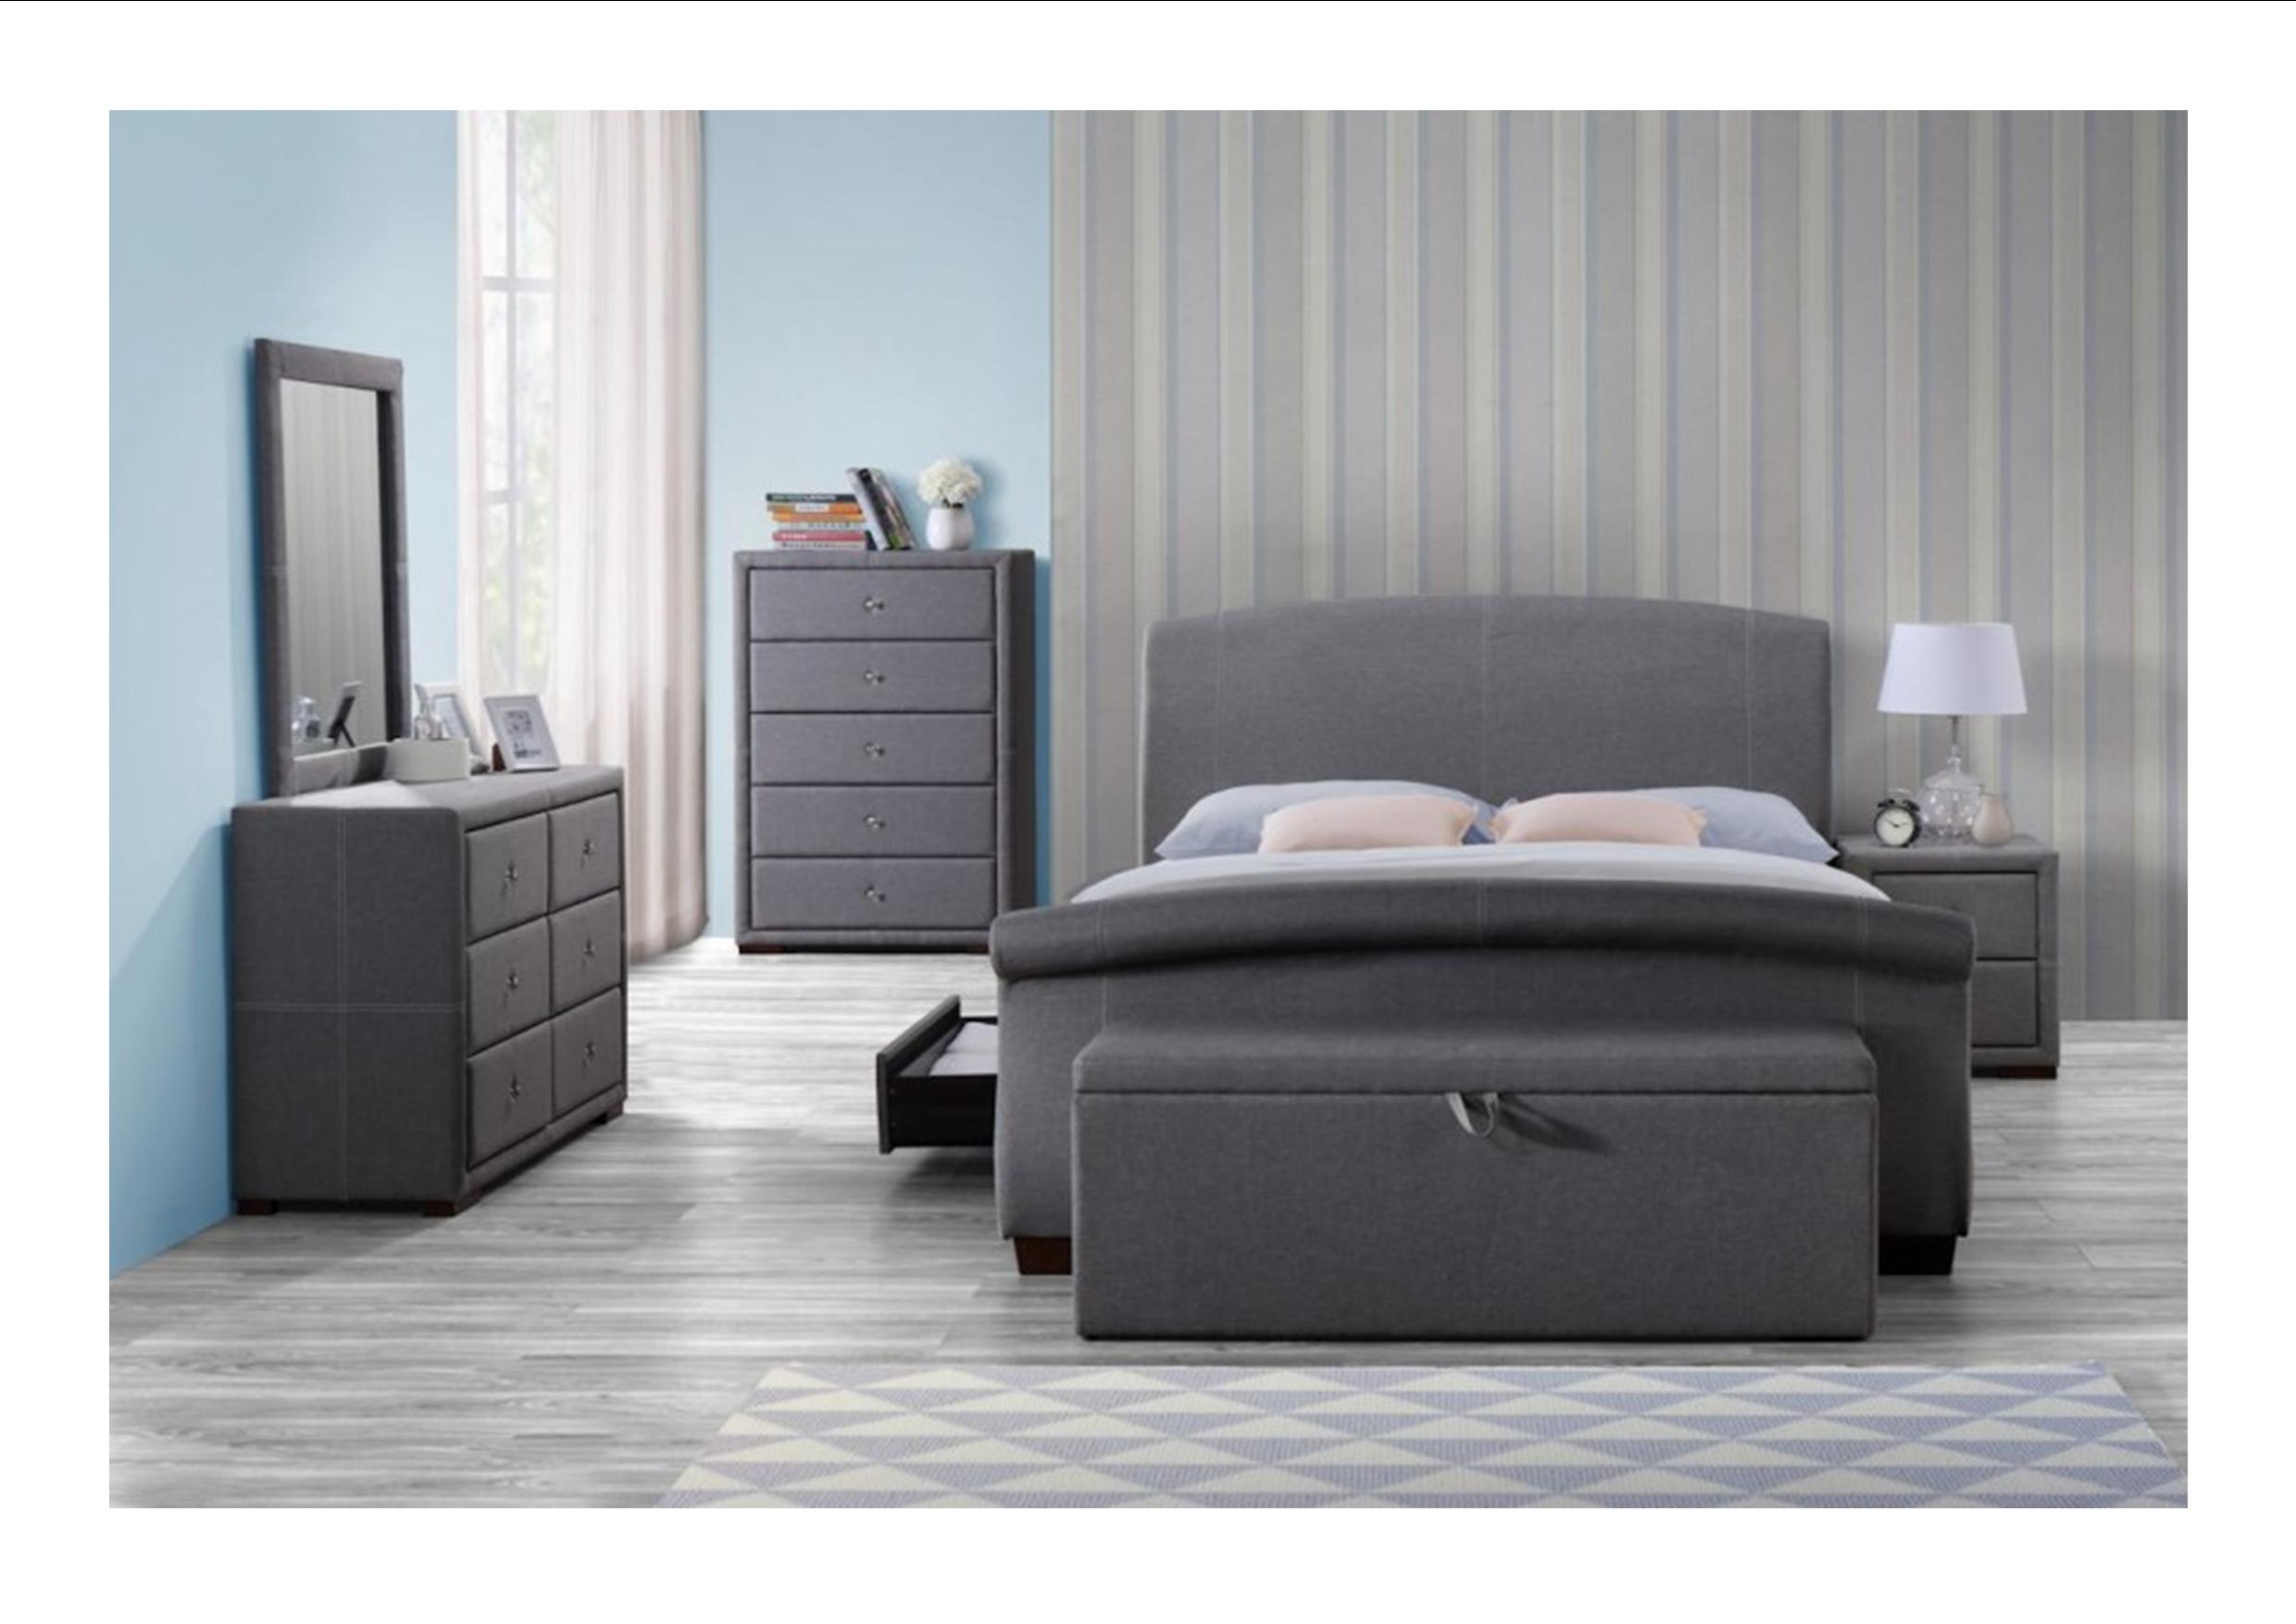 Birlea sorrento grey fabric bedroom furniture bedside drawers storage box ebay for Bedroom set with storage drawers